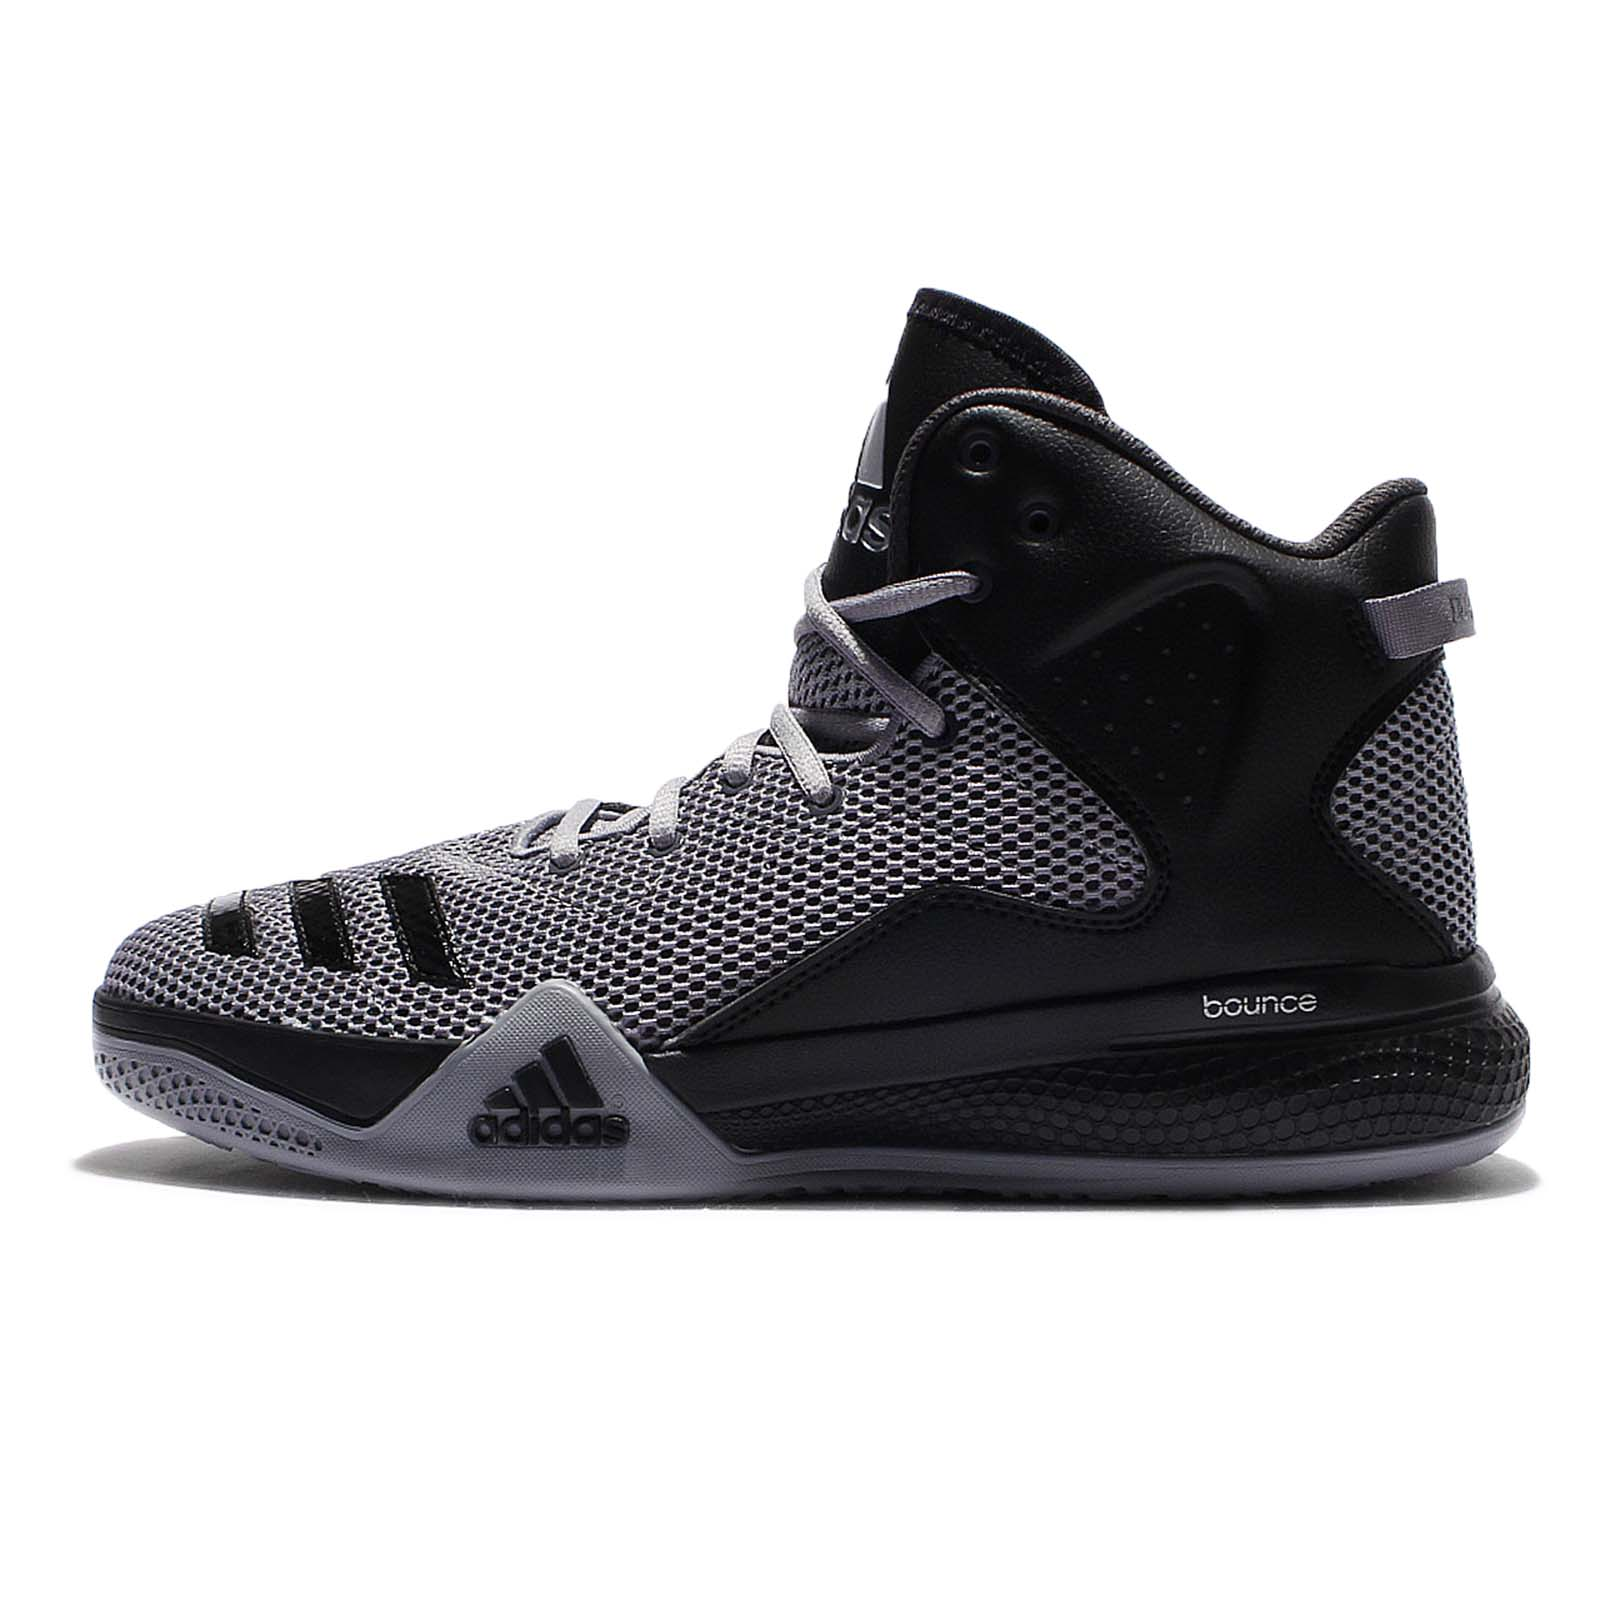 adidas DT BBall Mid Black Grey Mens Basketball Shoes Sneakers B72763